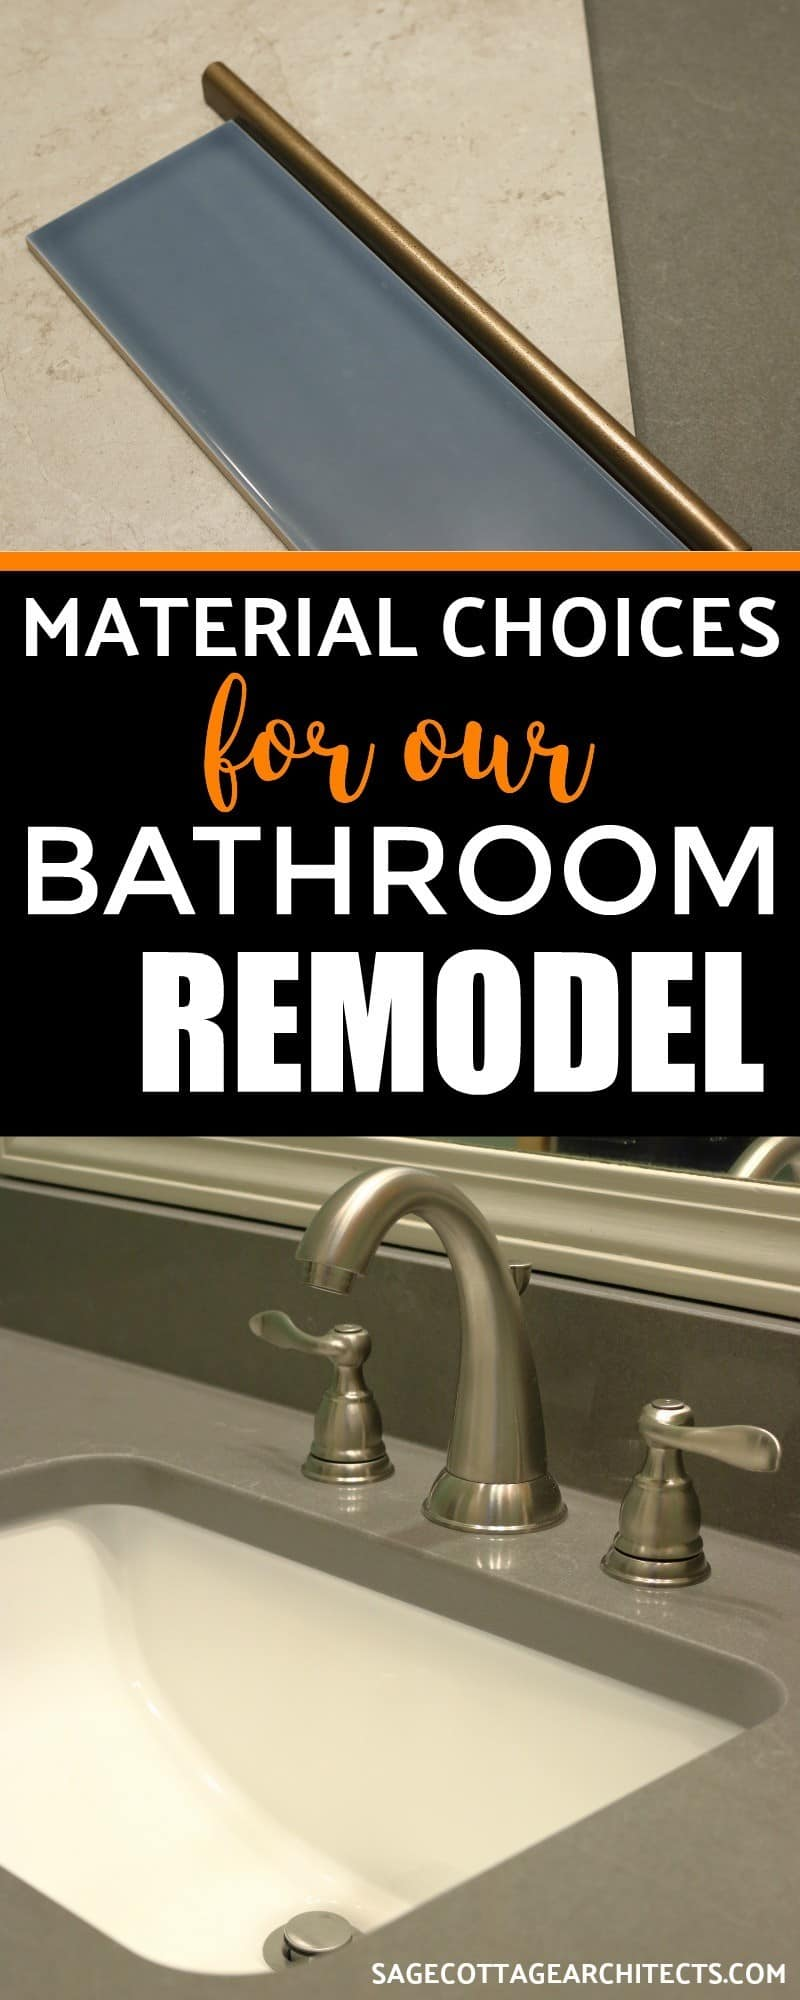 Collage of bathroom material choices - dark grey sink and blue subway tile